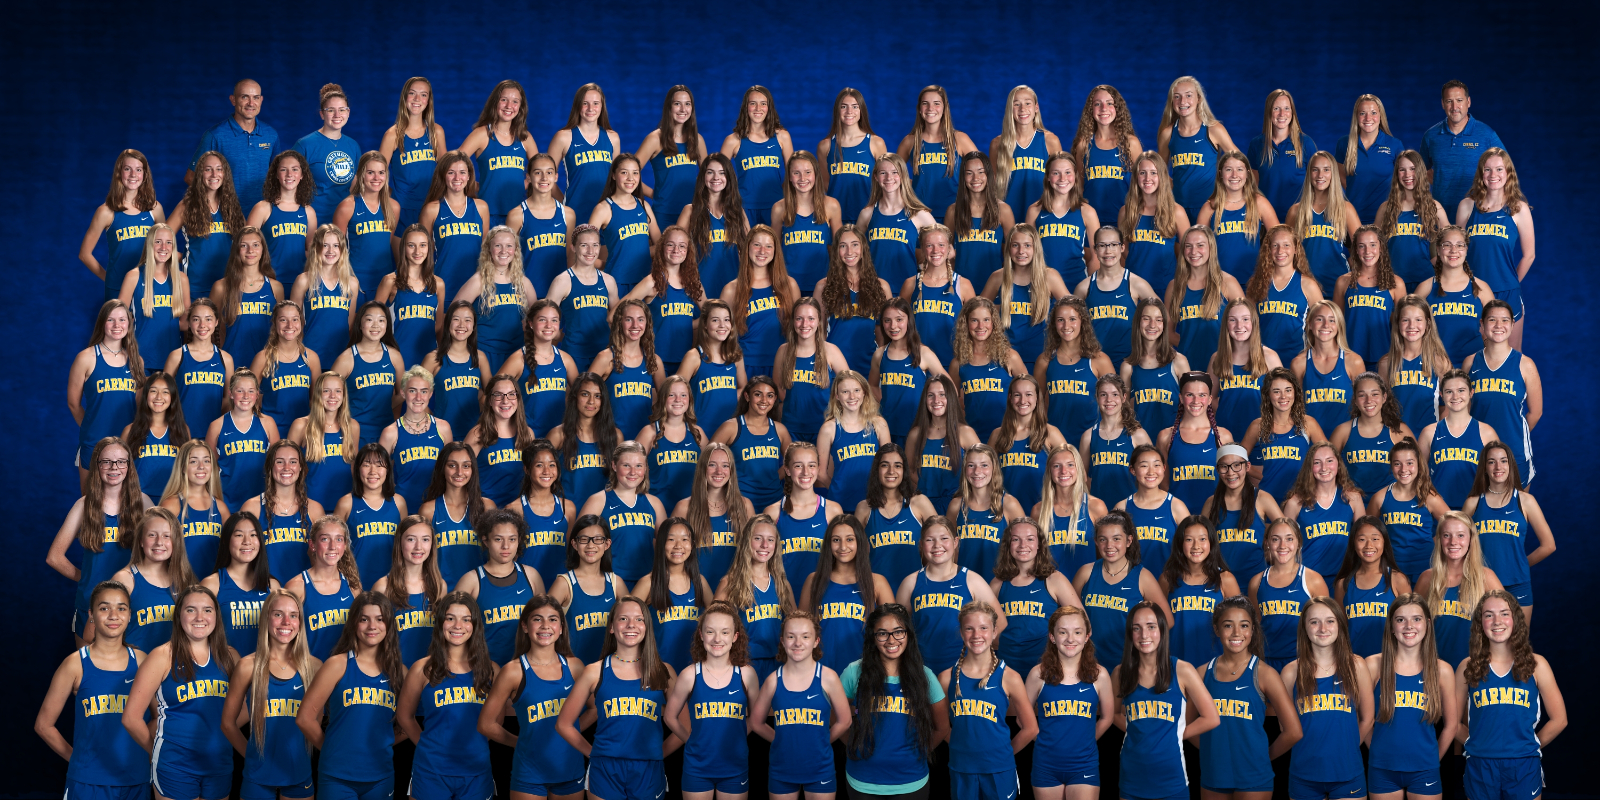 2020 Carmel Girls Cross Country